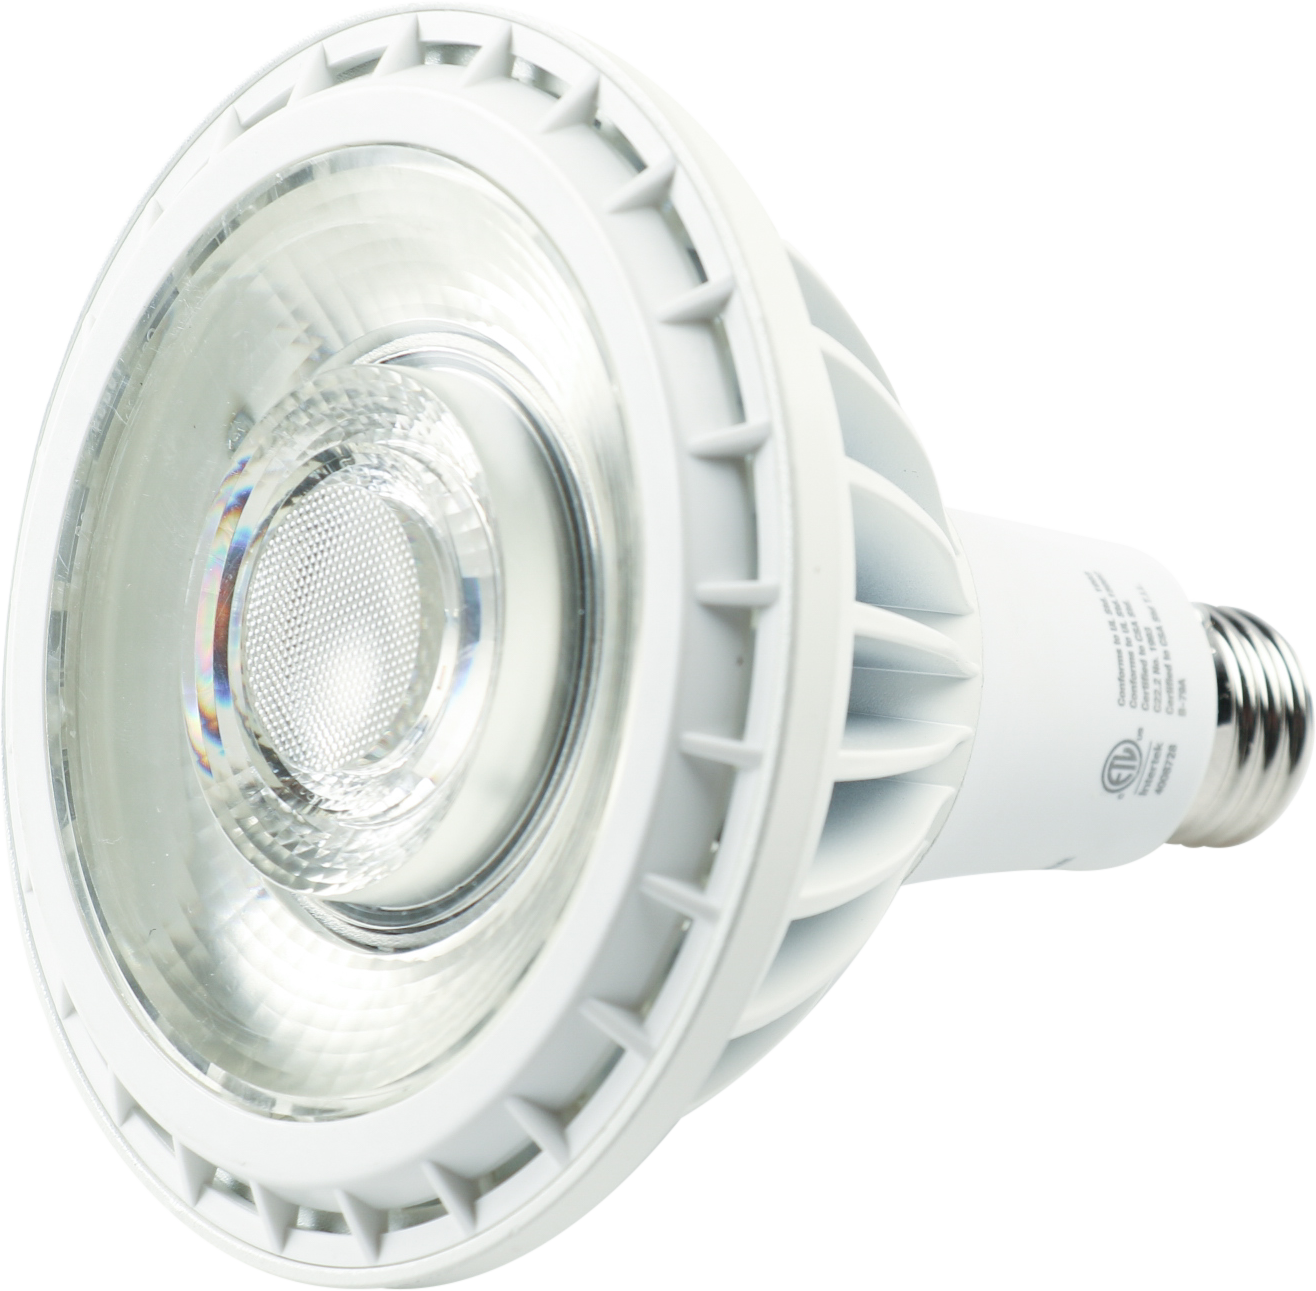 Sylvania Non-Dimmable 30W High Output 120-277V 3000K 25 Degree PAR38 LED Bulb, Outdoor Rated